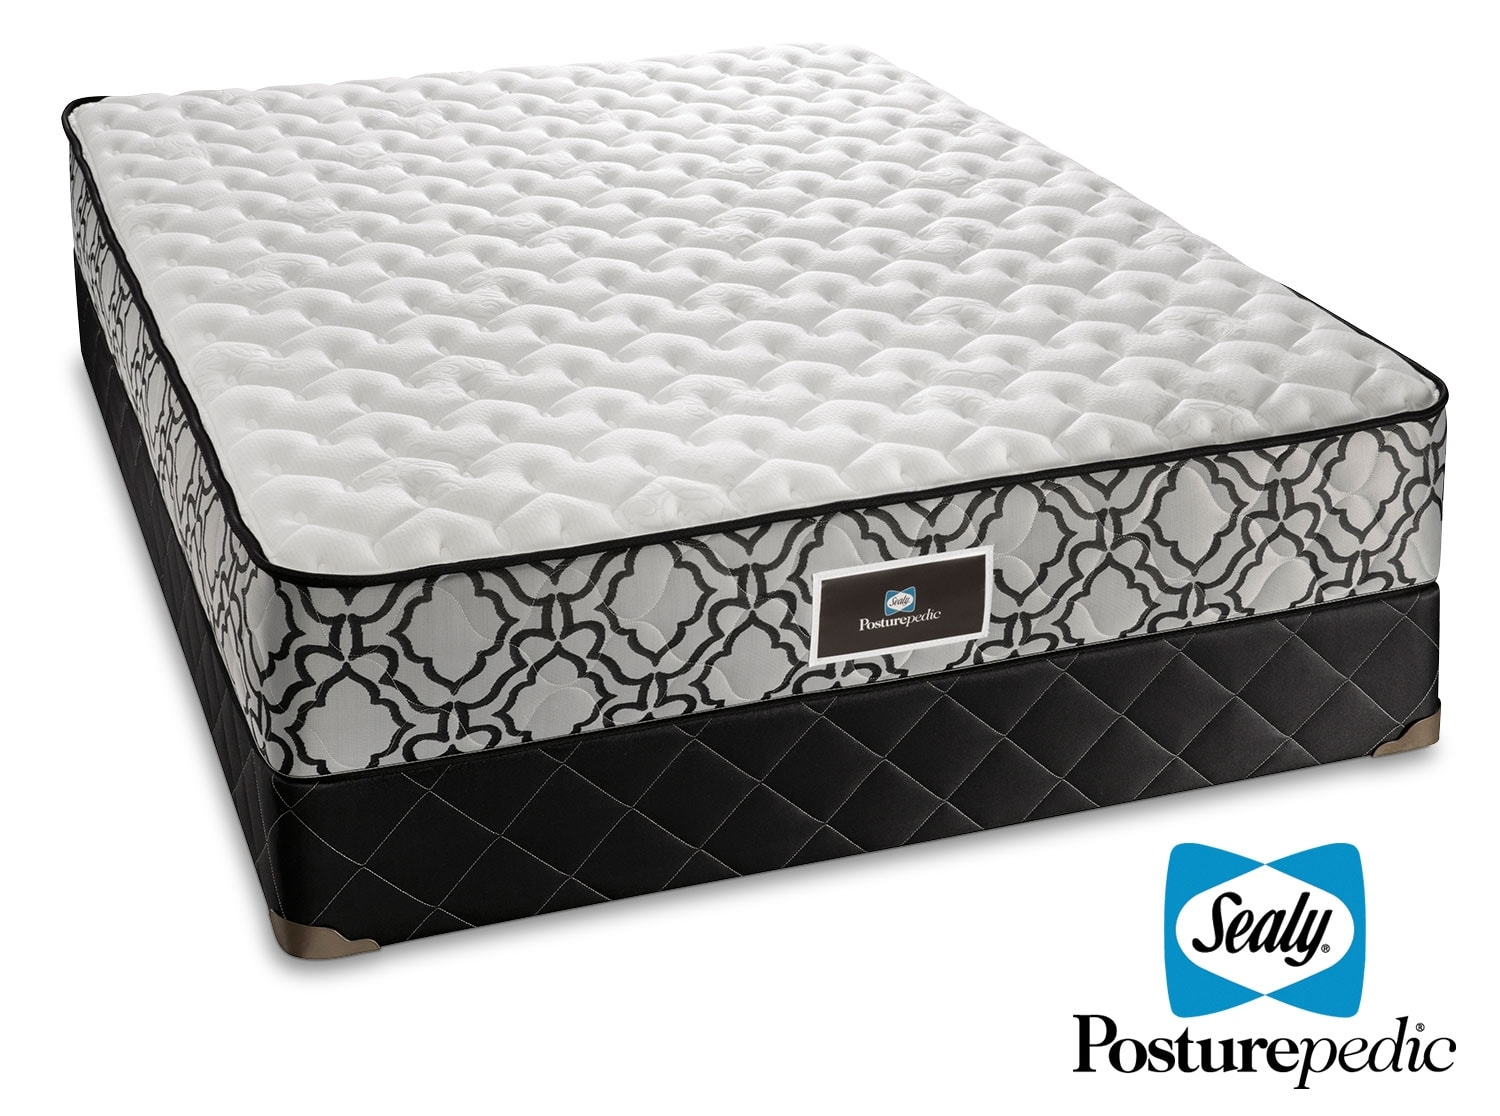 Sealy Saga Full Mattress/Boxsrping Set